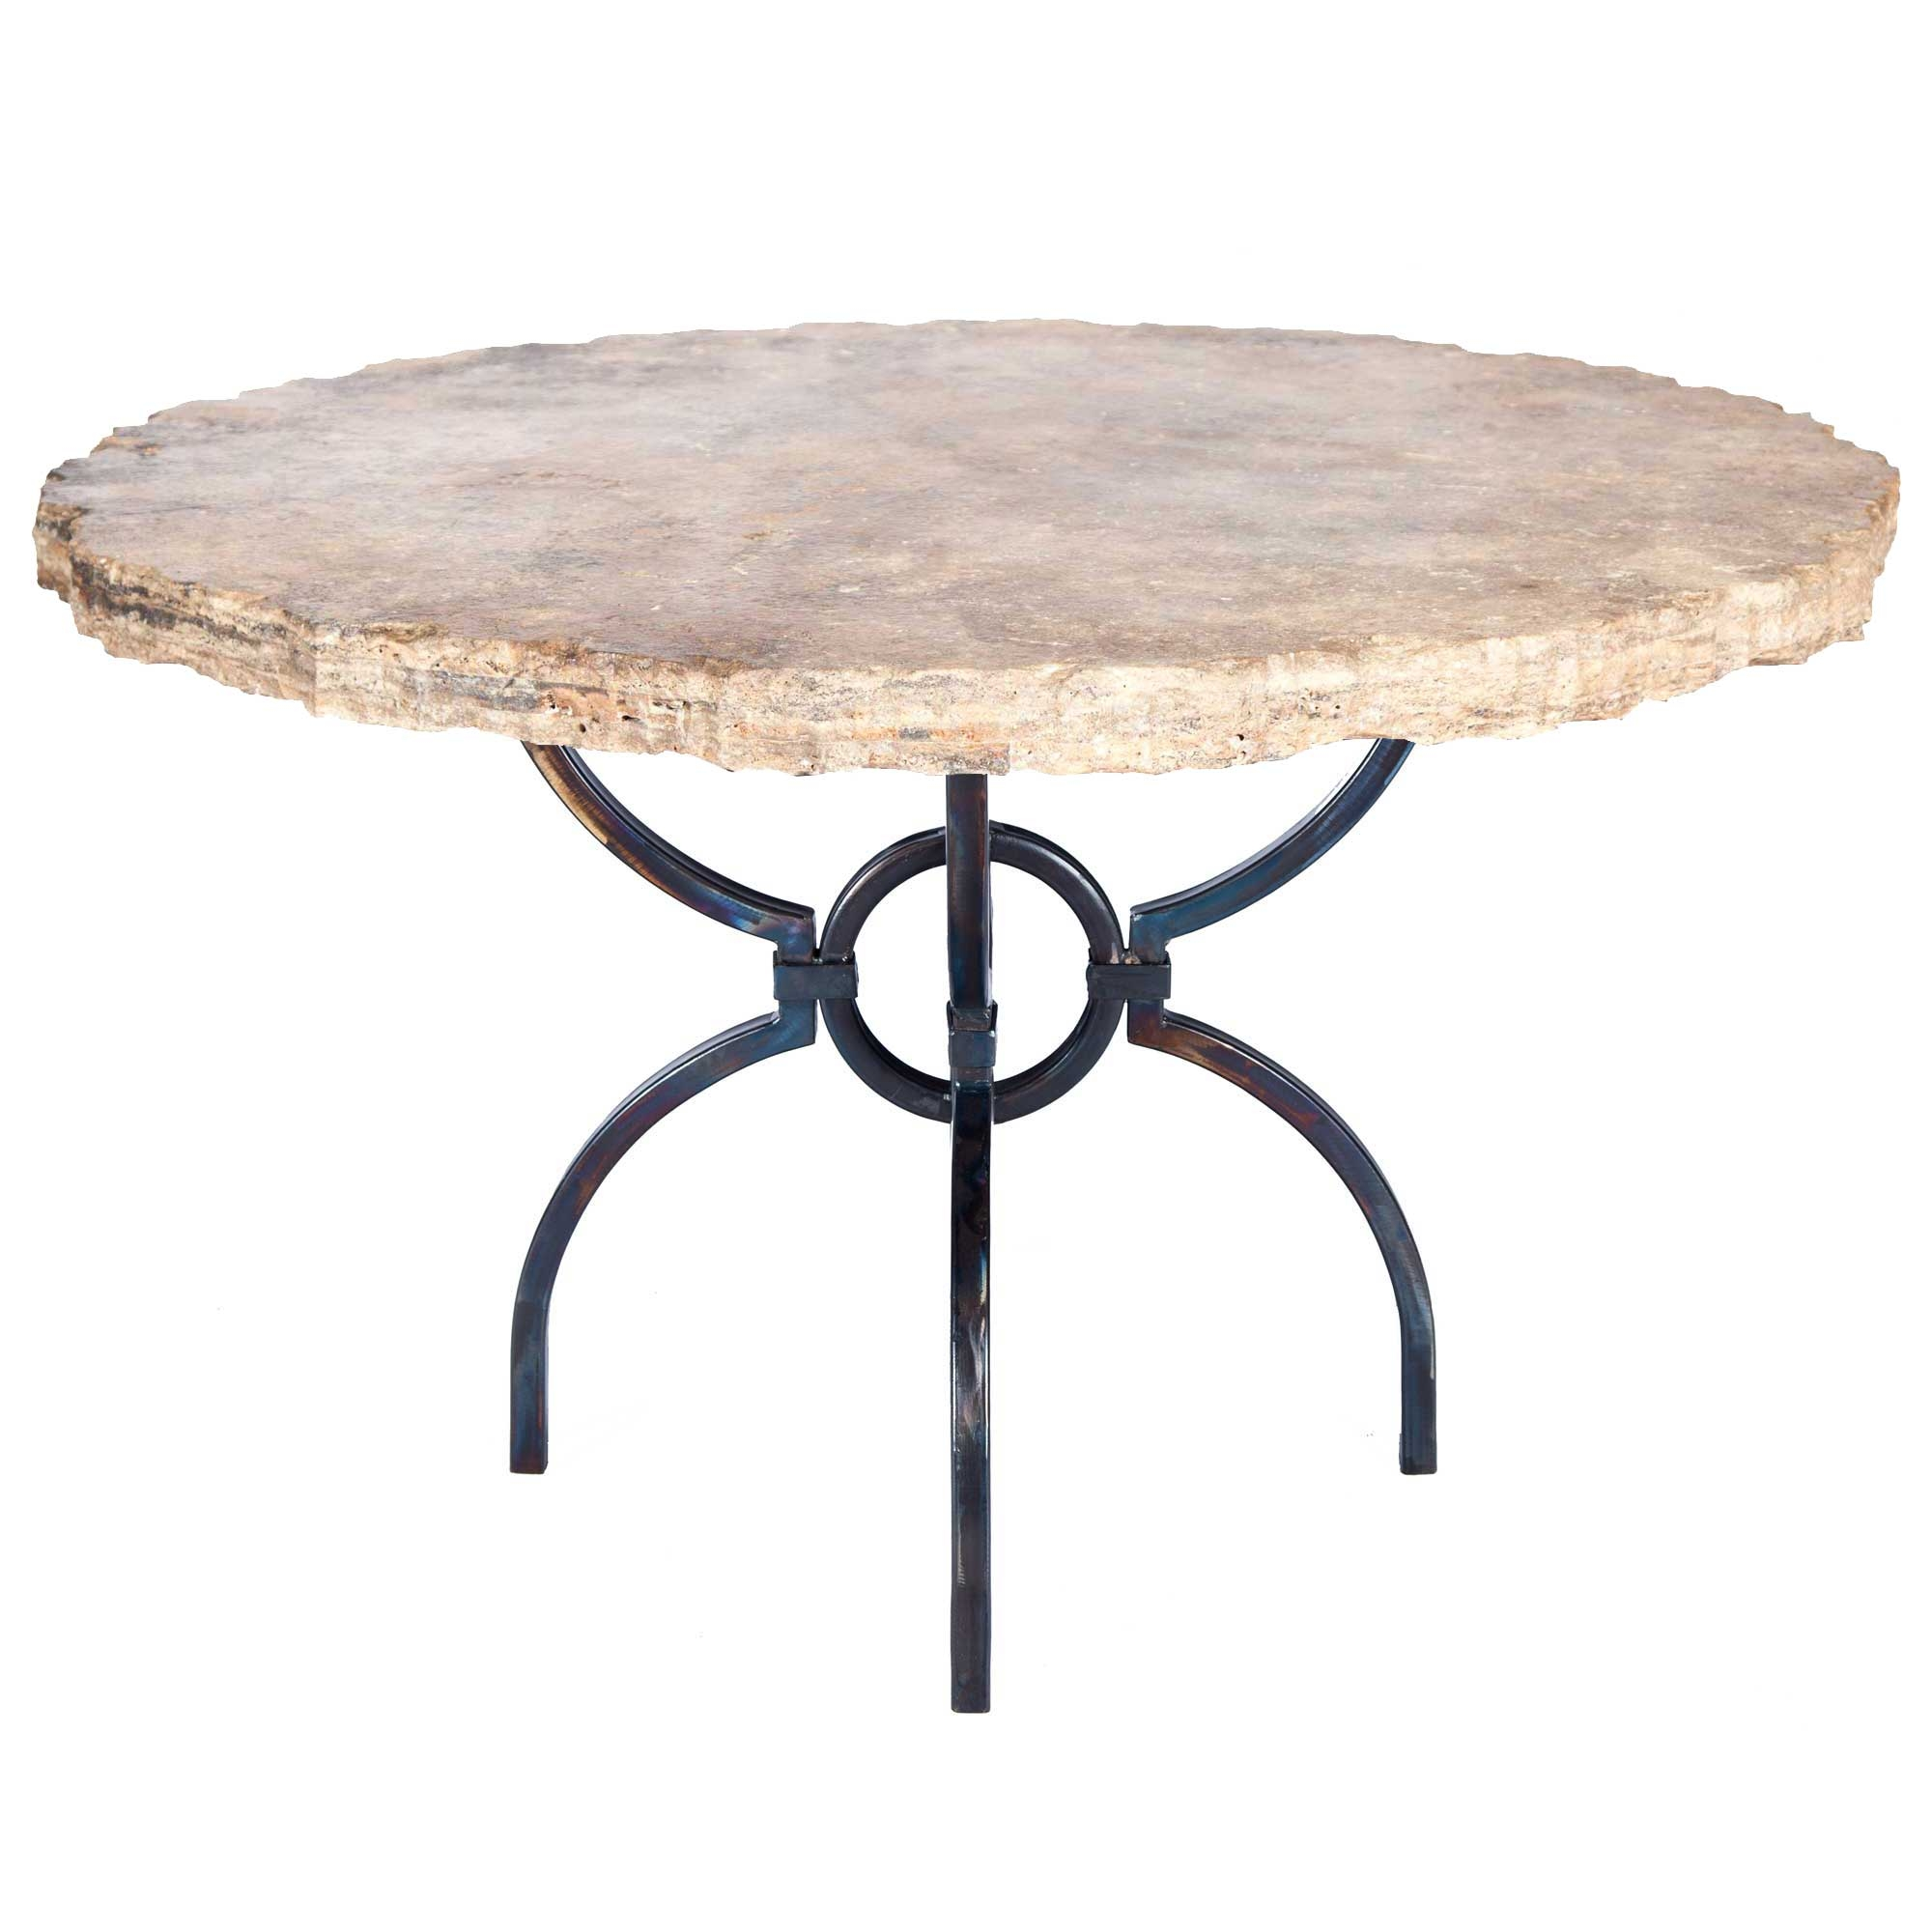 logan iron dining table with 54 round marble top. Black Bedroom Furniture Sets. Home Design Ideas